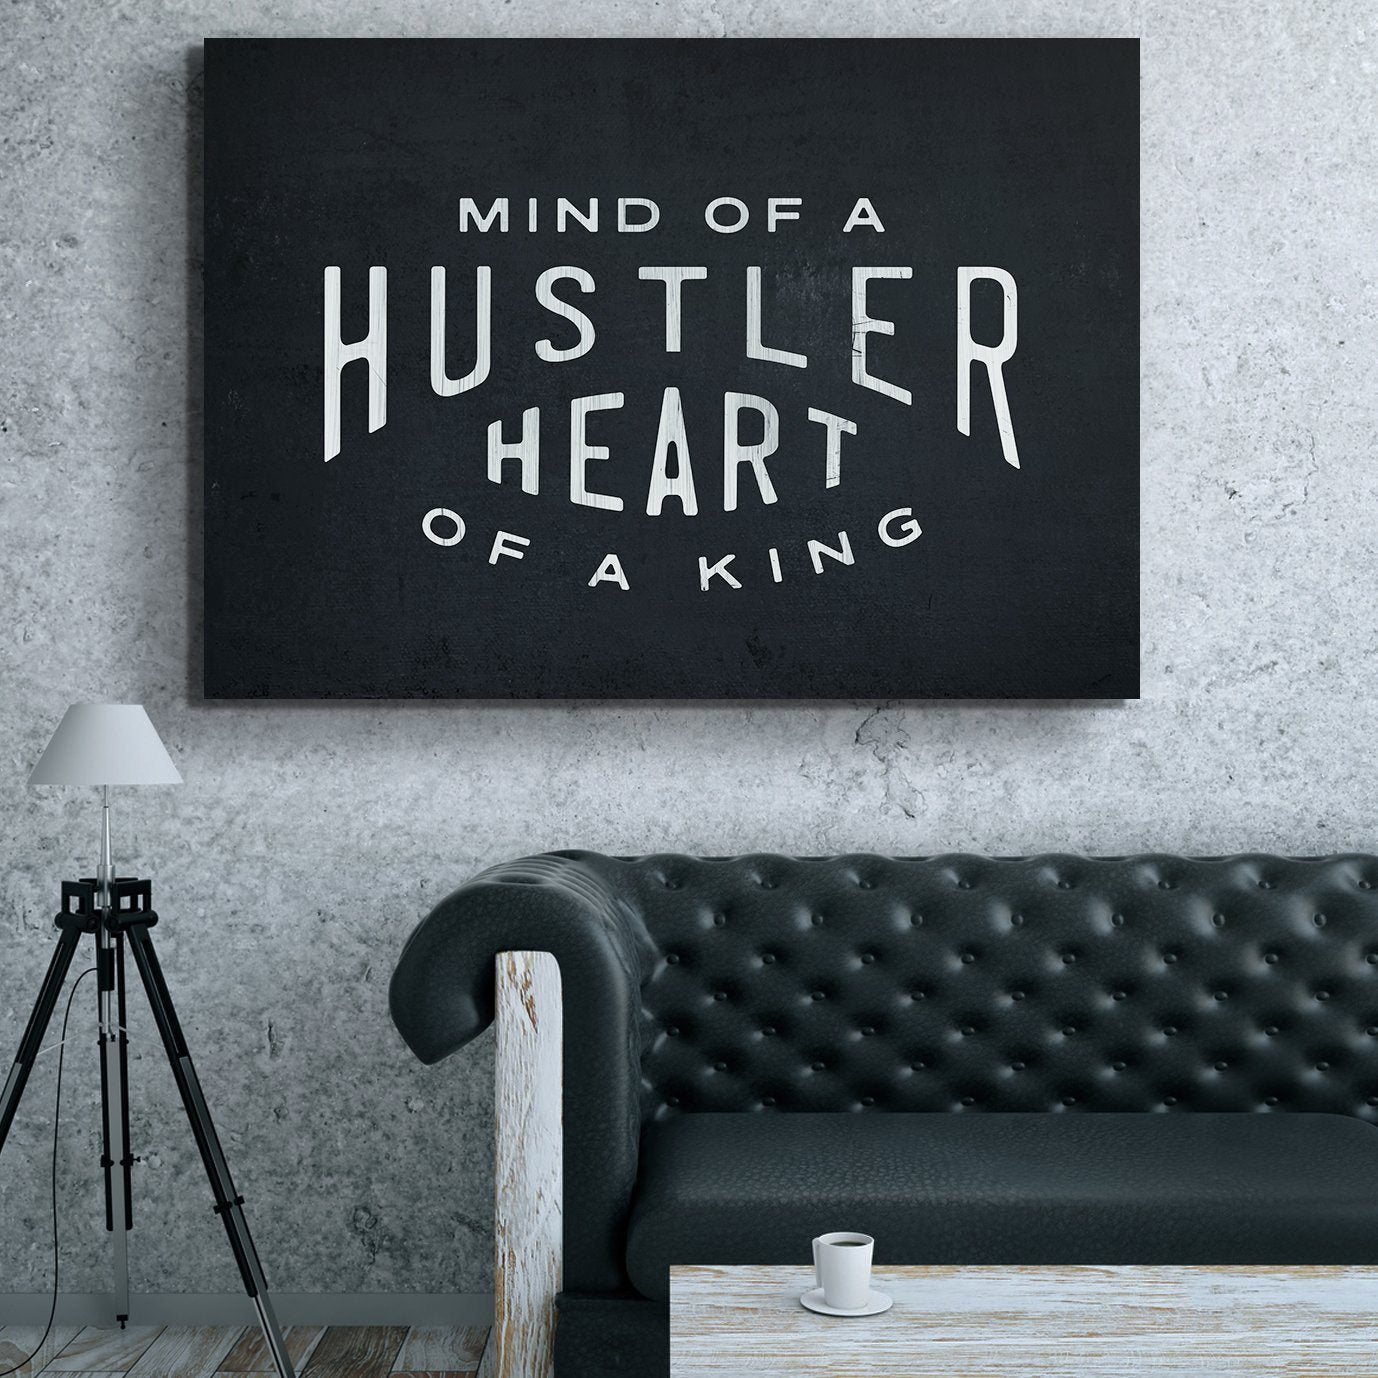 MIND OF A HUSTLER. HEART OF A KING.